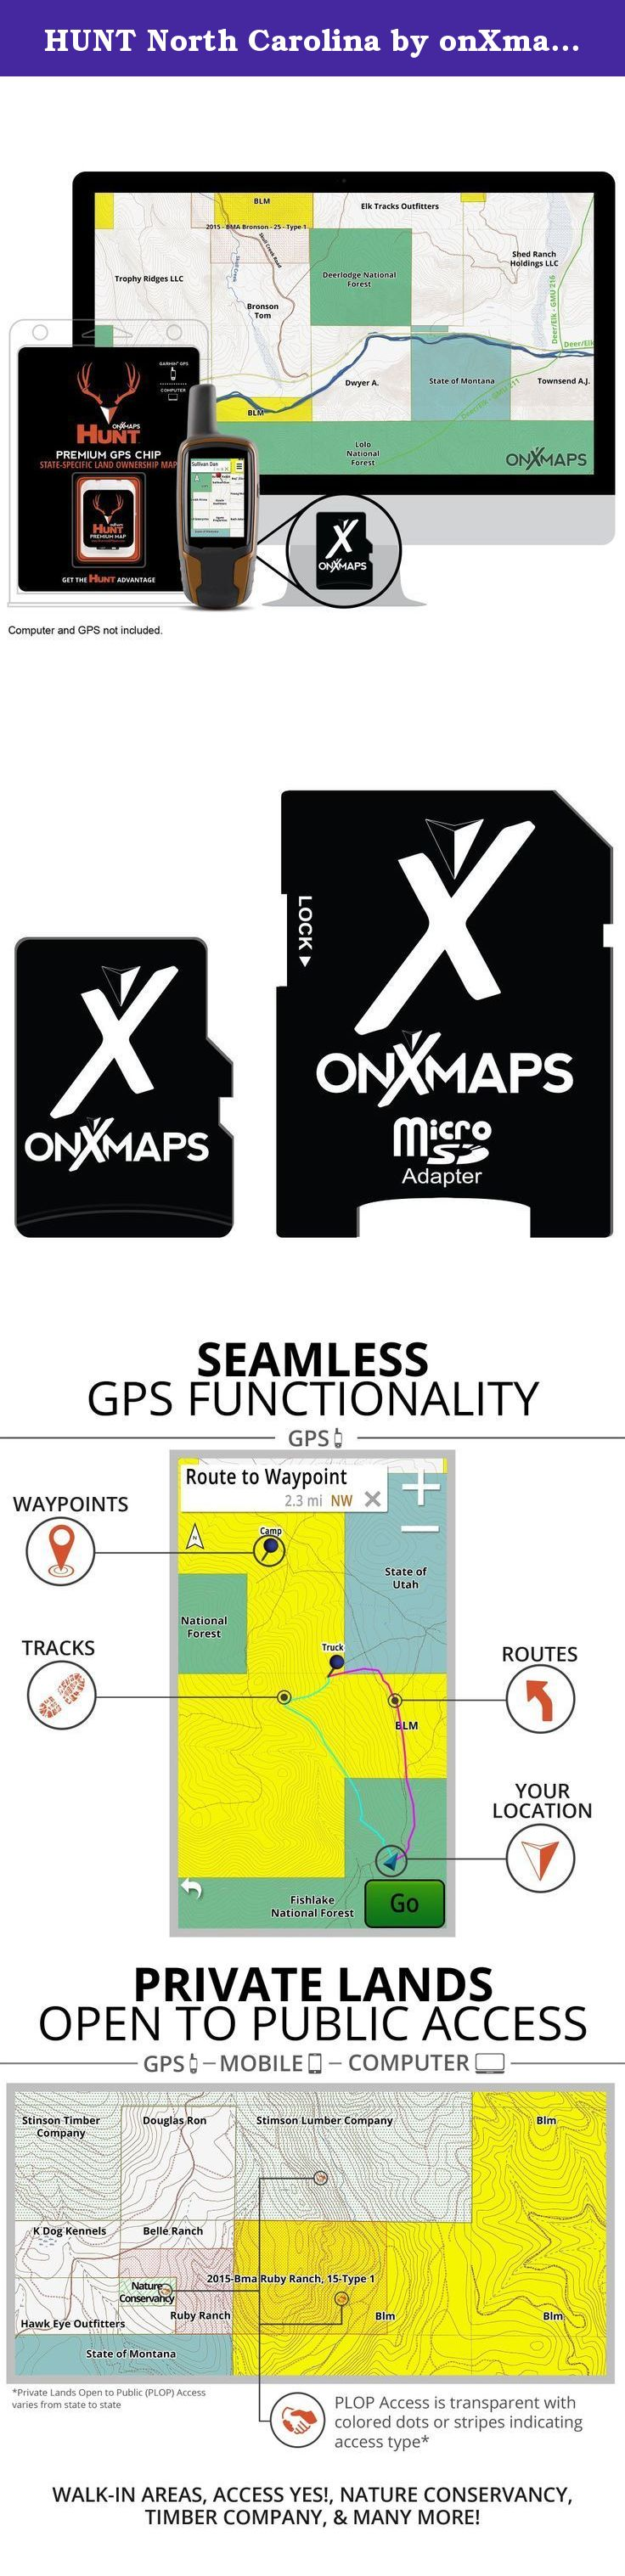 Pin on Topographic Maps, Navigation & Electronics, Camping